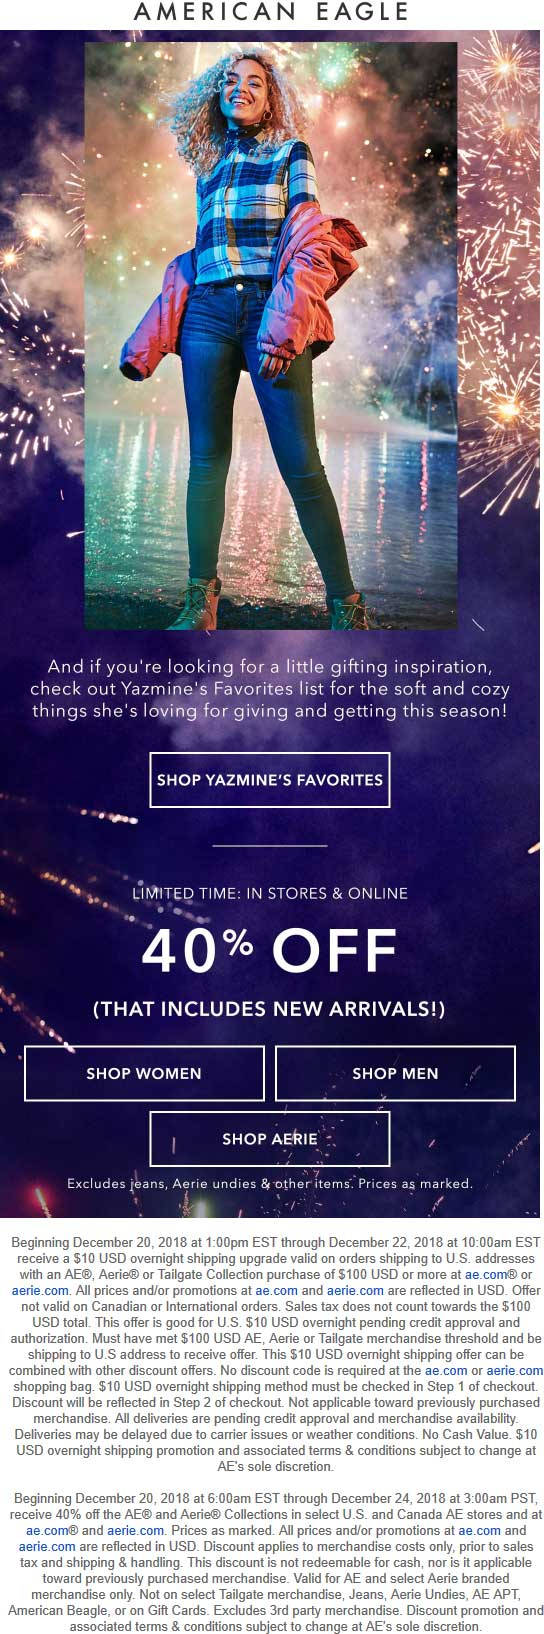 American Eagle Coupon October 2019 40% off at American Eagle, ditto online